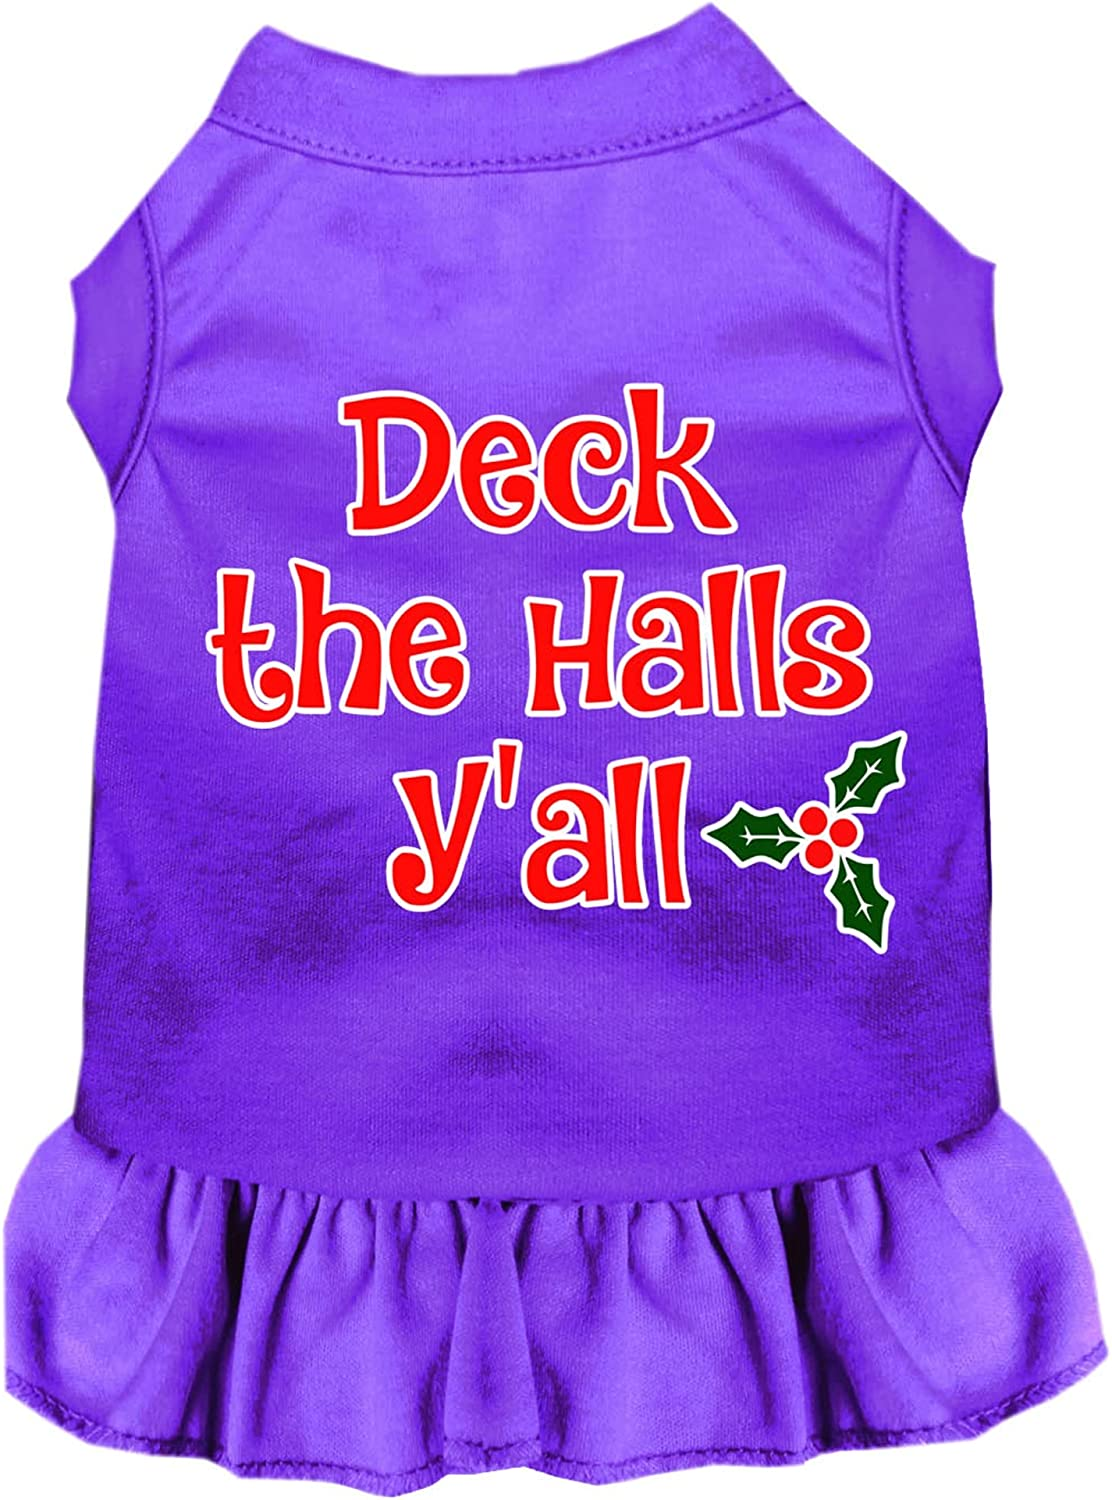 Mirage Spasm price Pet New sales Product Deck The Halls Dress Y'all Print P Dog Screen